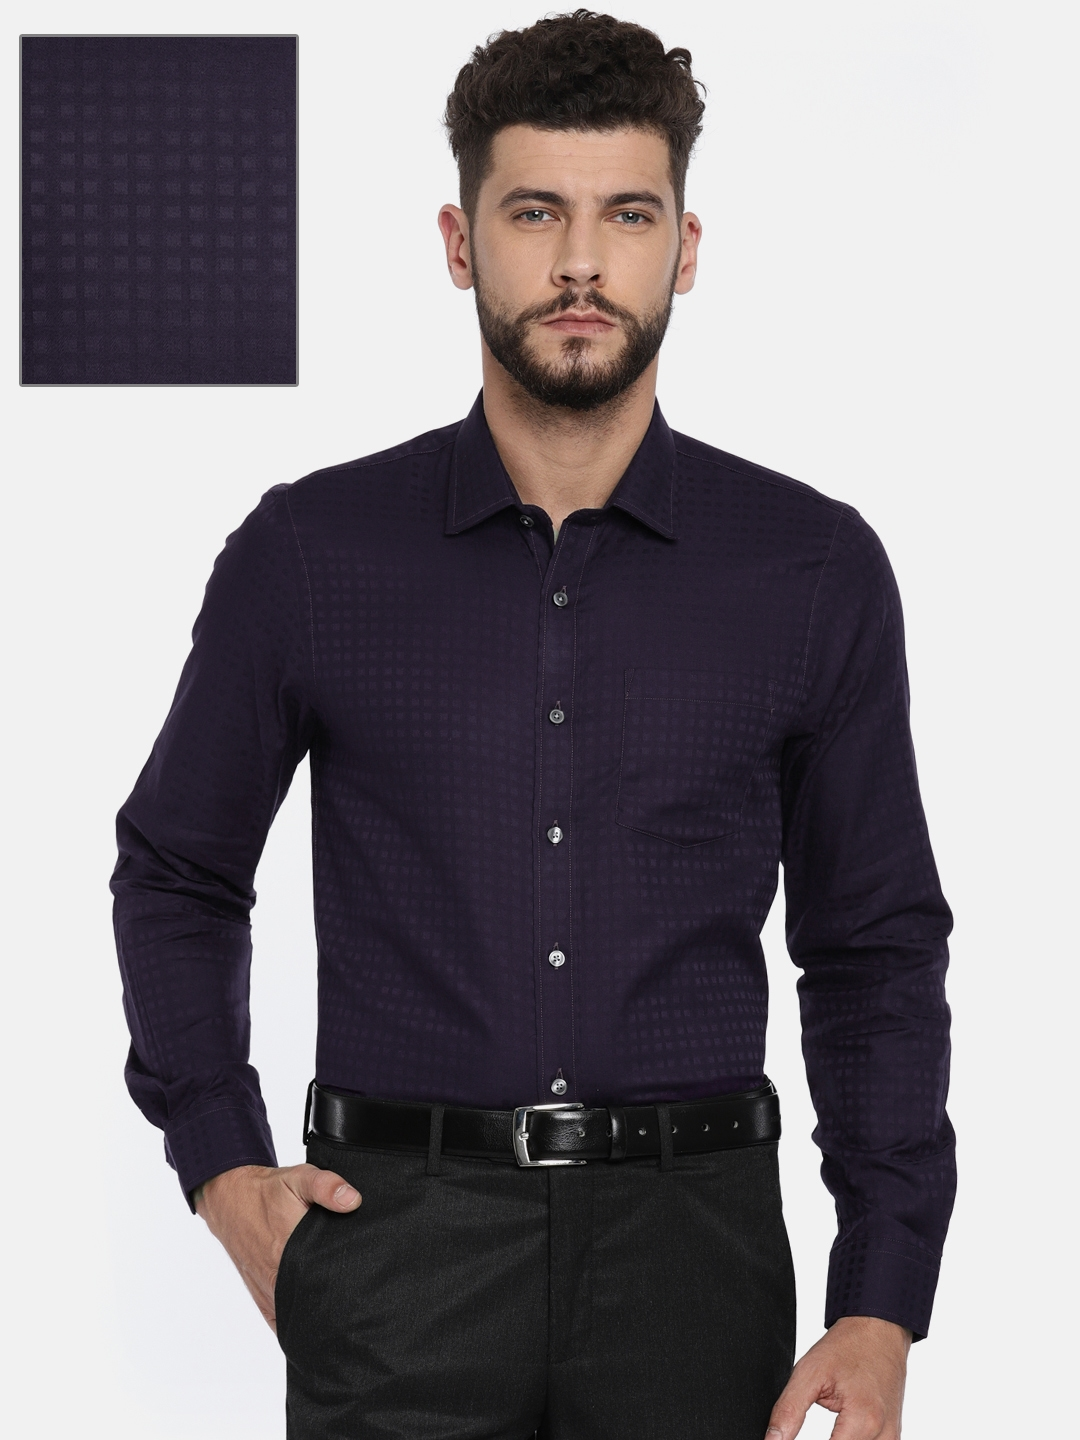 307d1f6d1fa Buy Arrow Men Purple Slim Fit Solid Formal Shirt - Shirts for Men ...